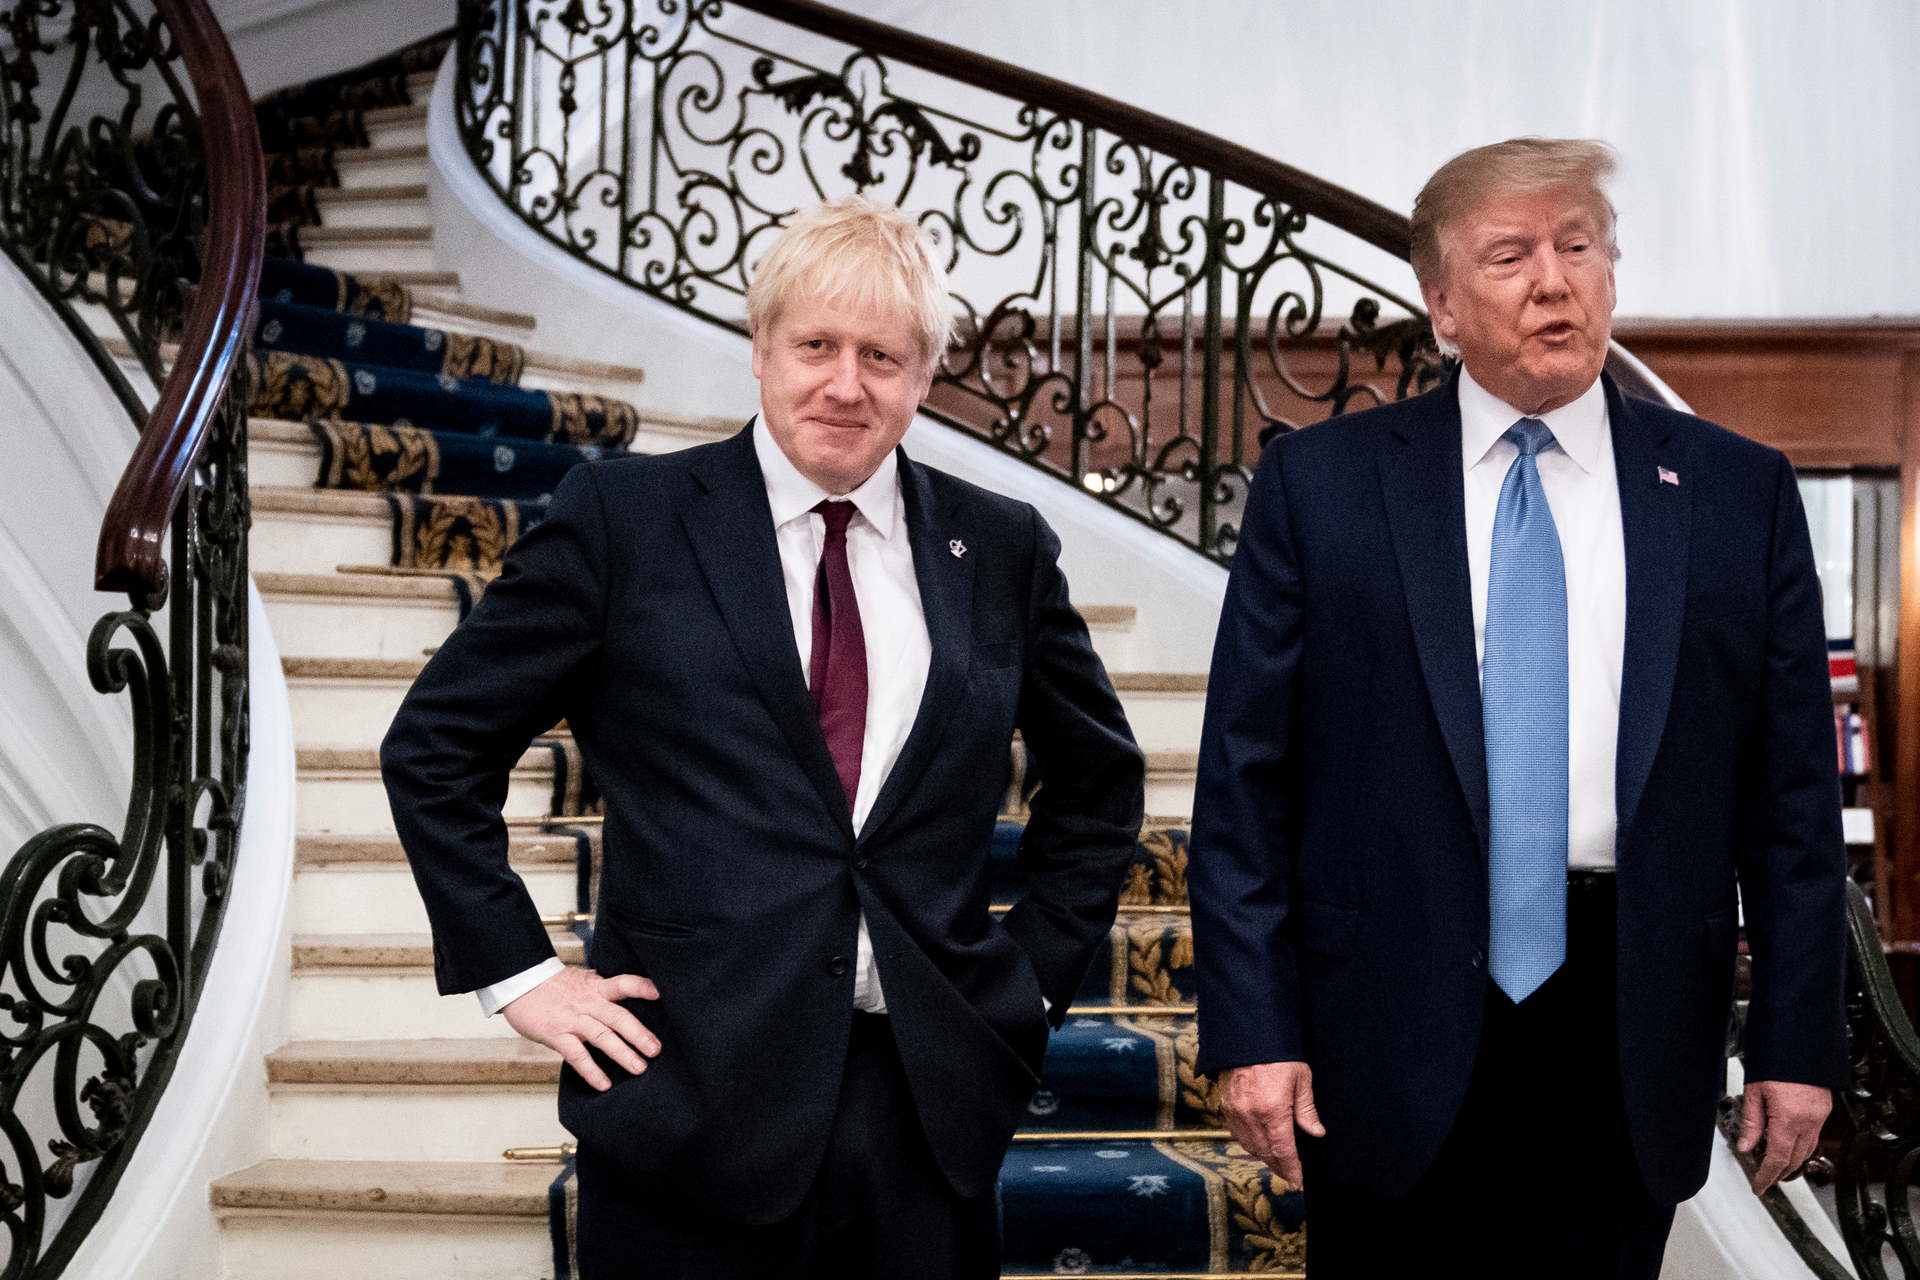 Donald Trump on Boris Johnson at G-7: 'Do you know who this is?'